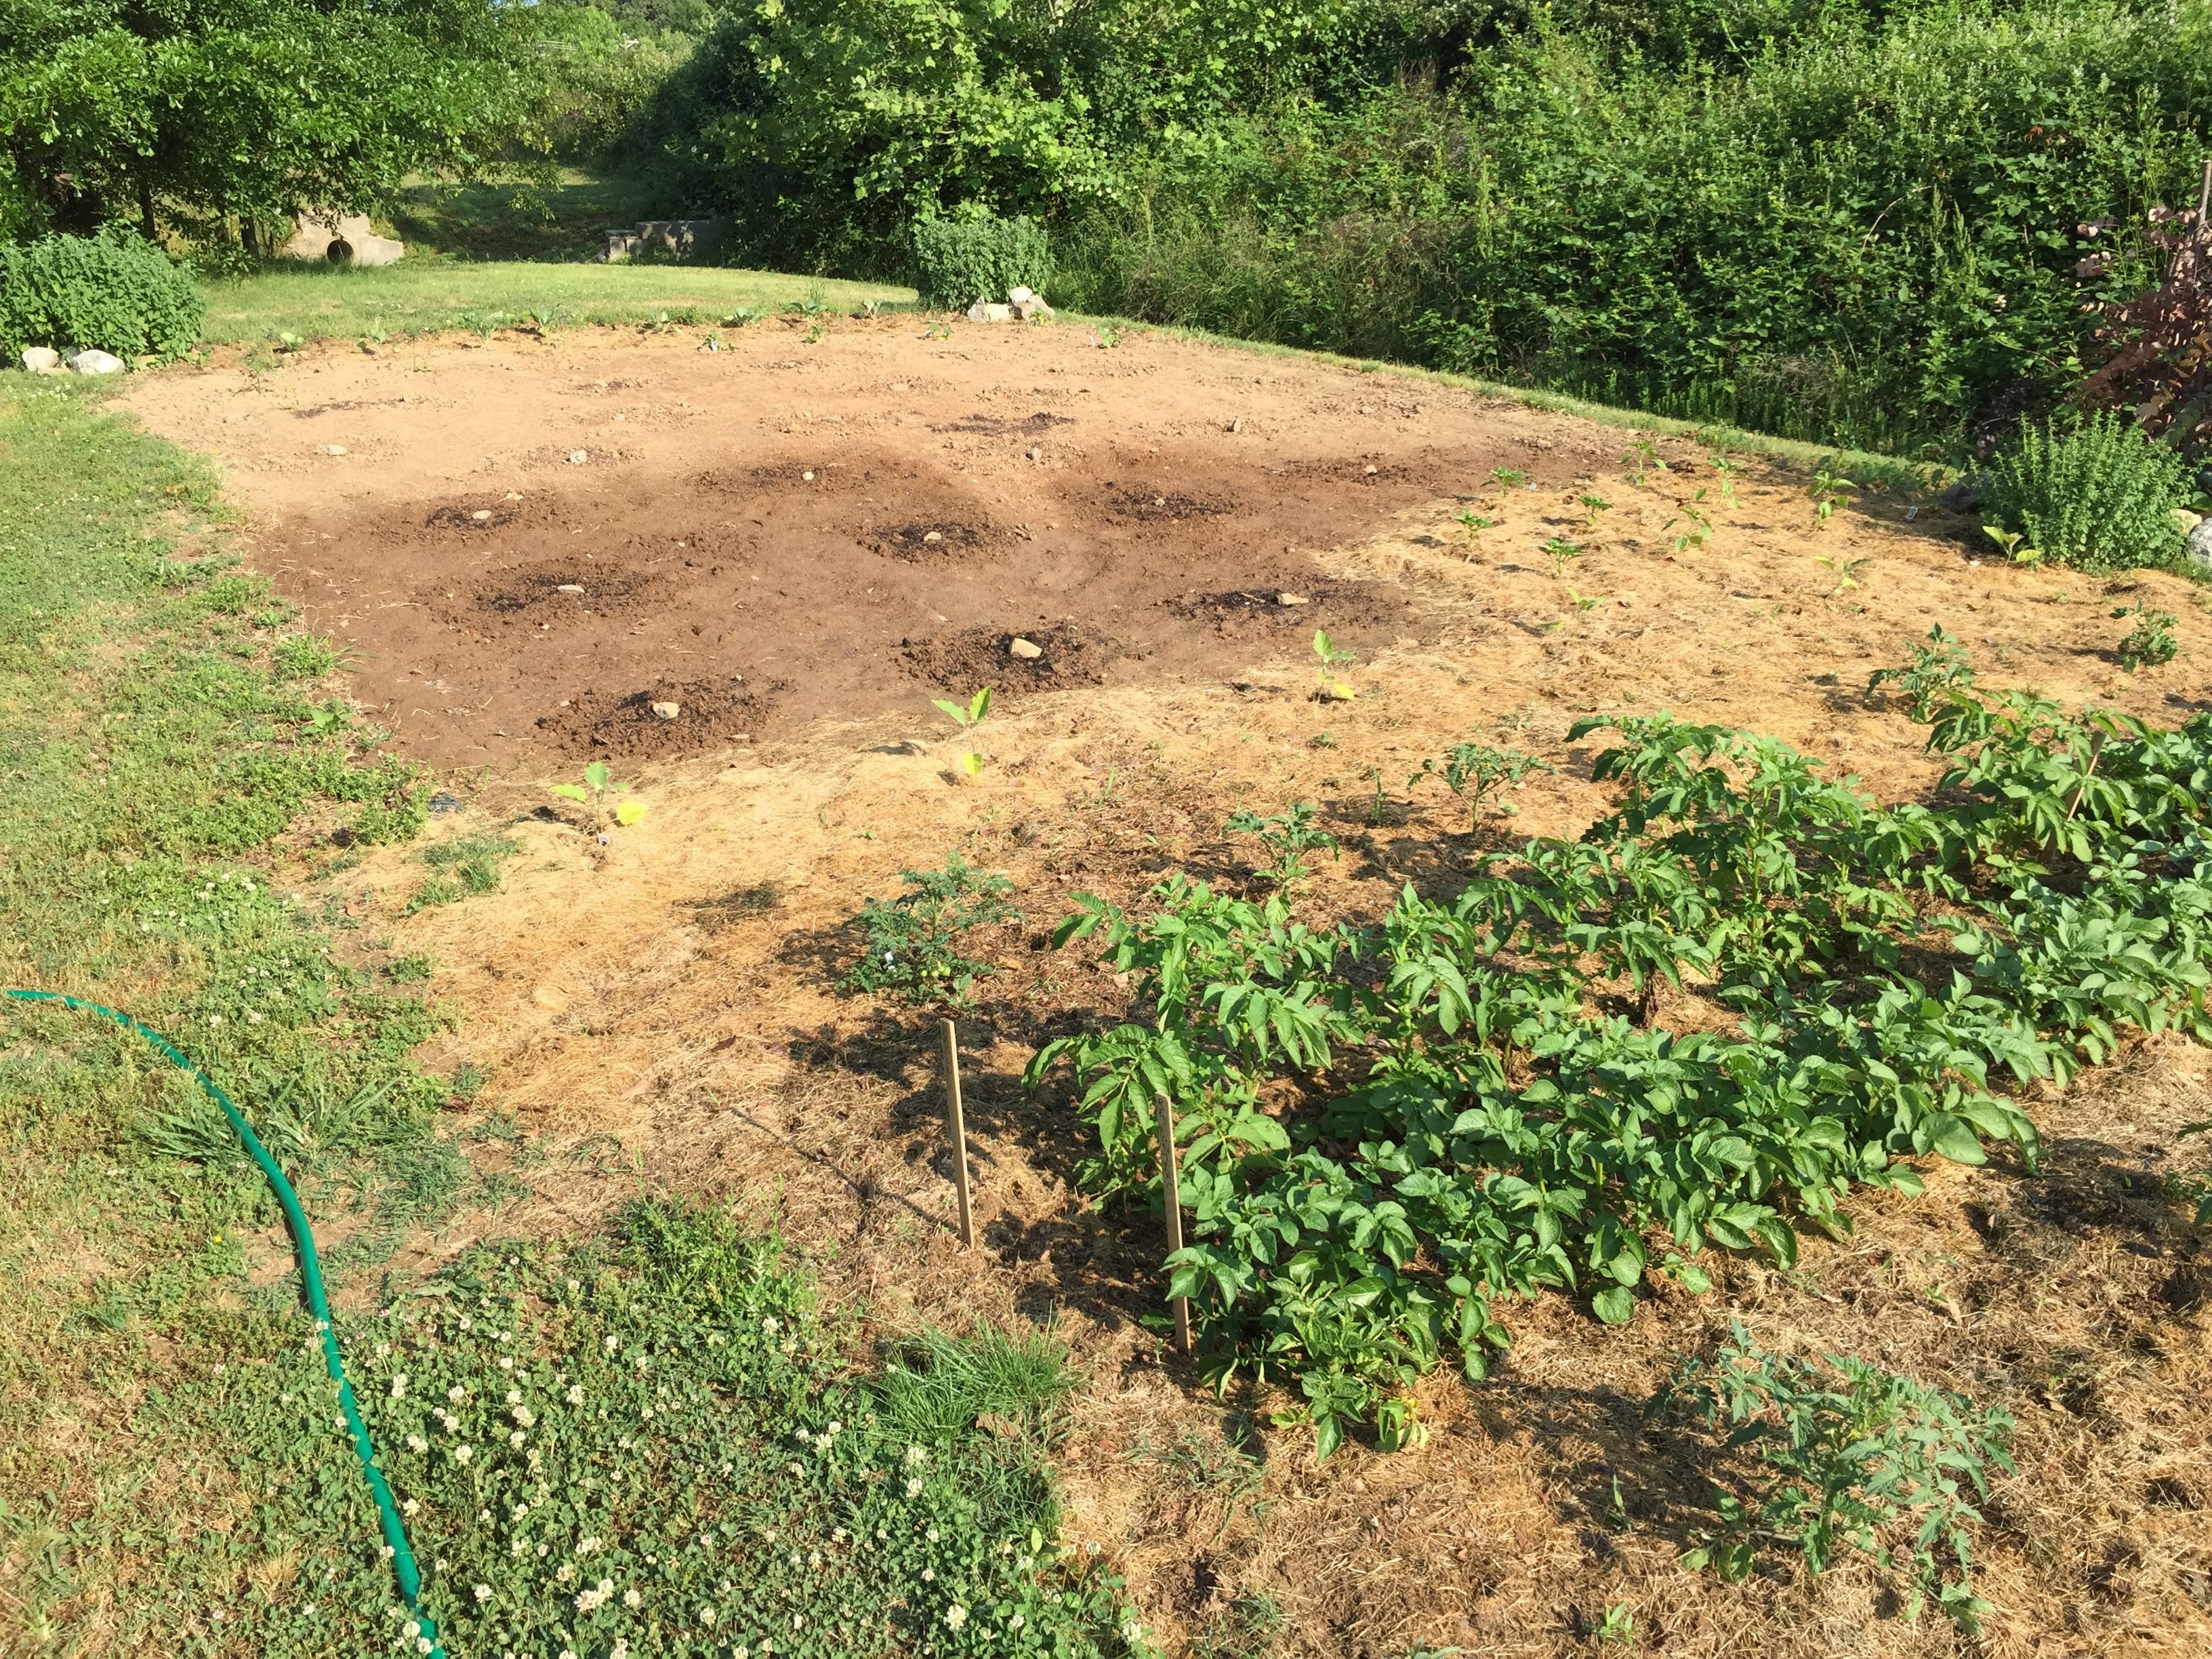 Heavy duty ground cover removed to show rich weedfree soil works